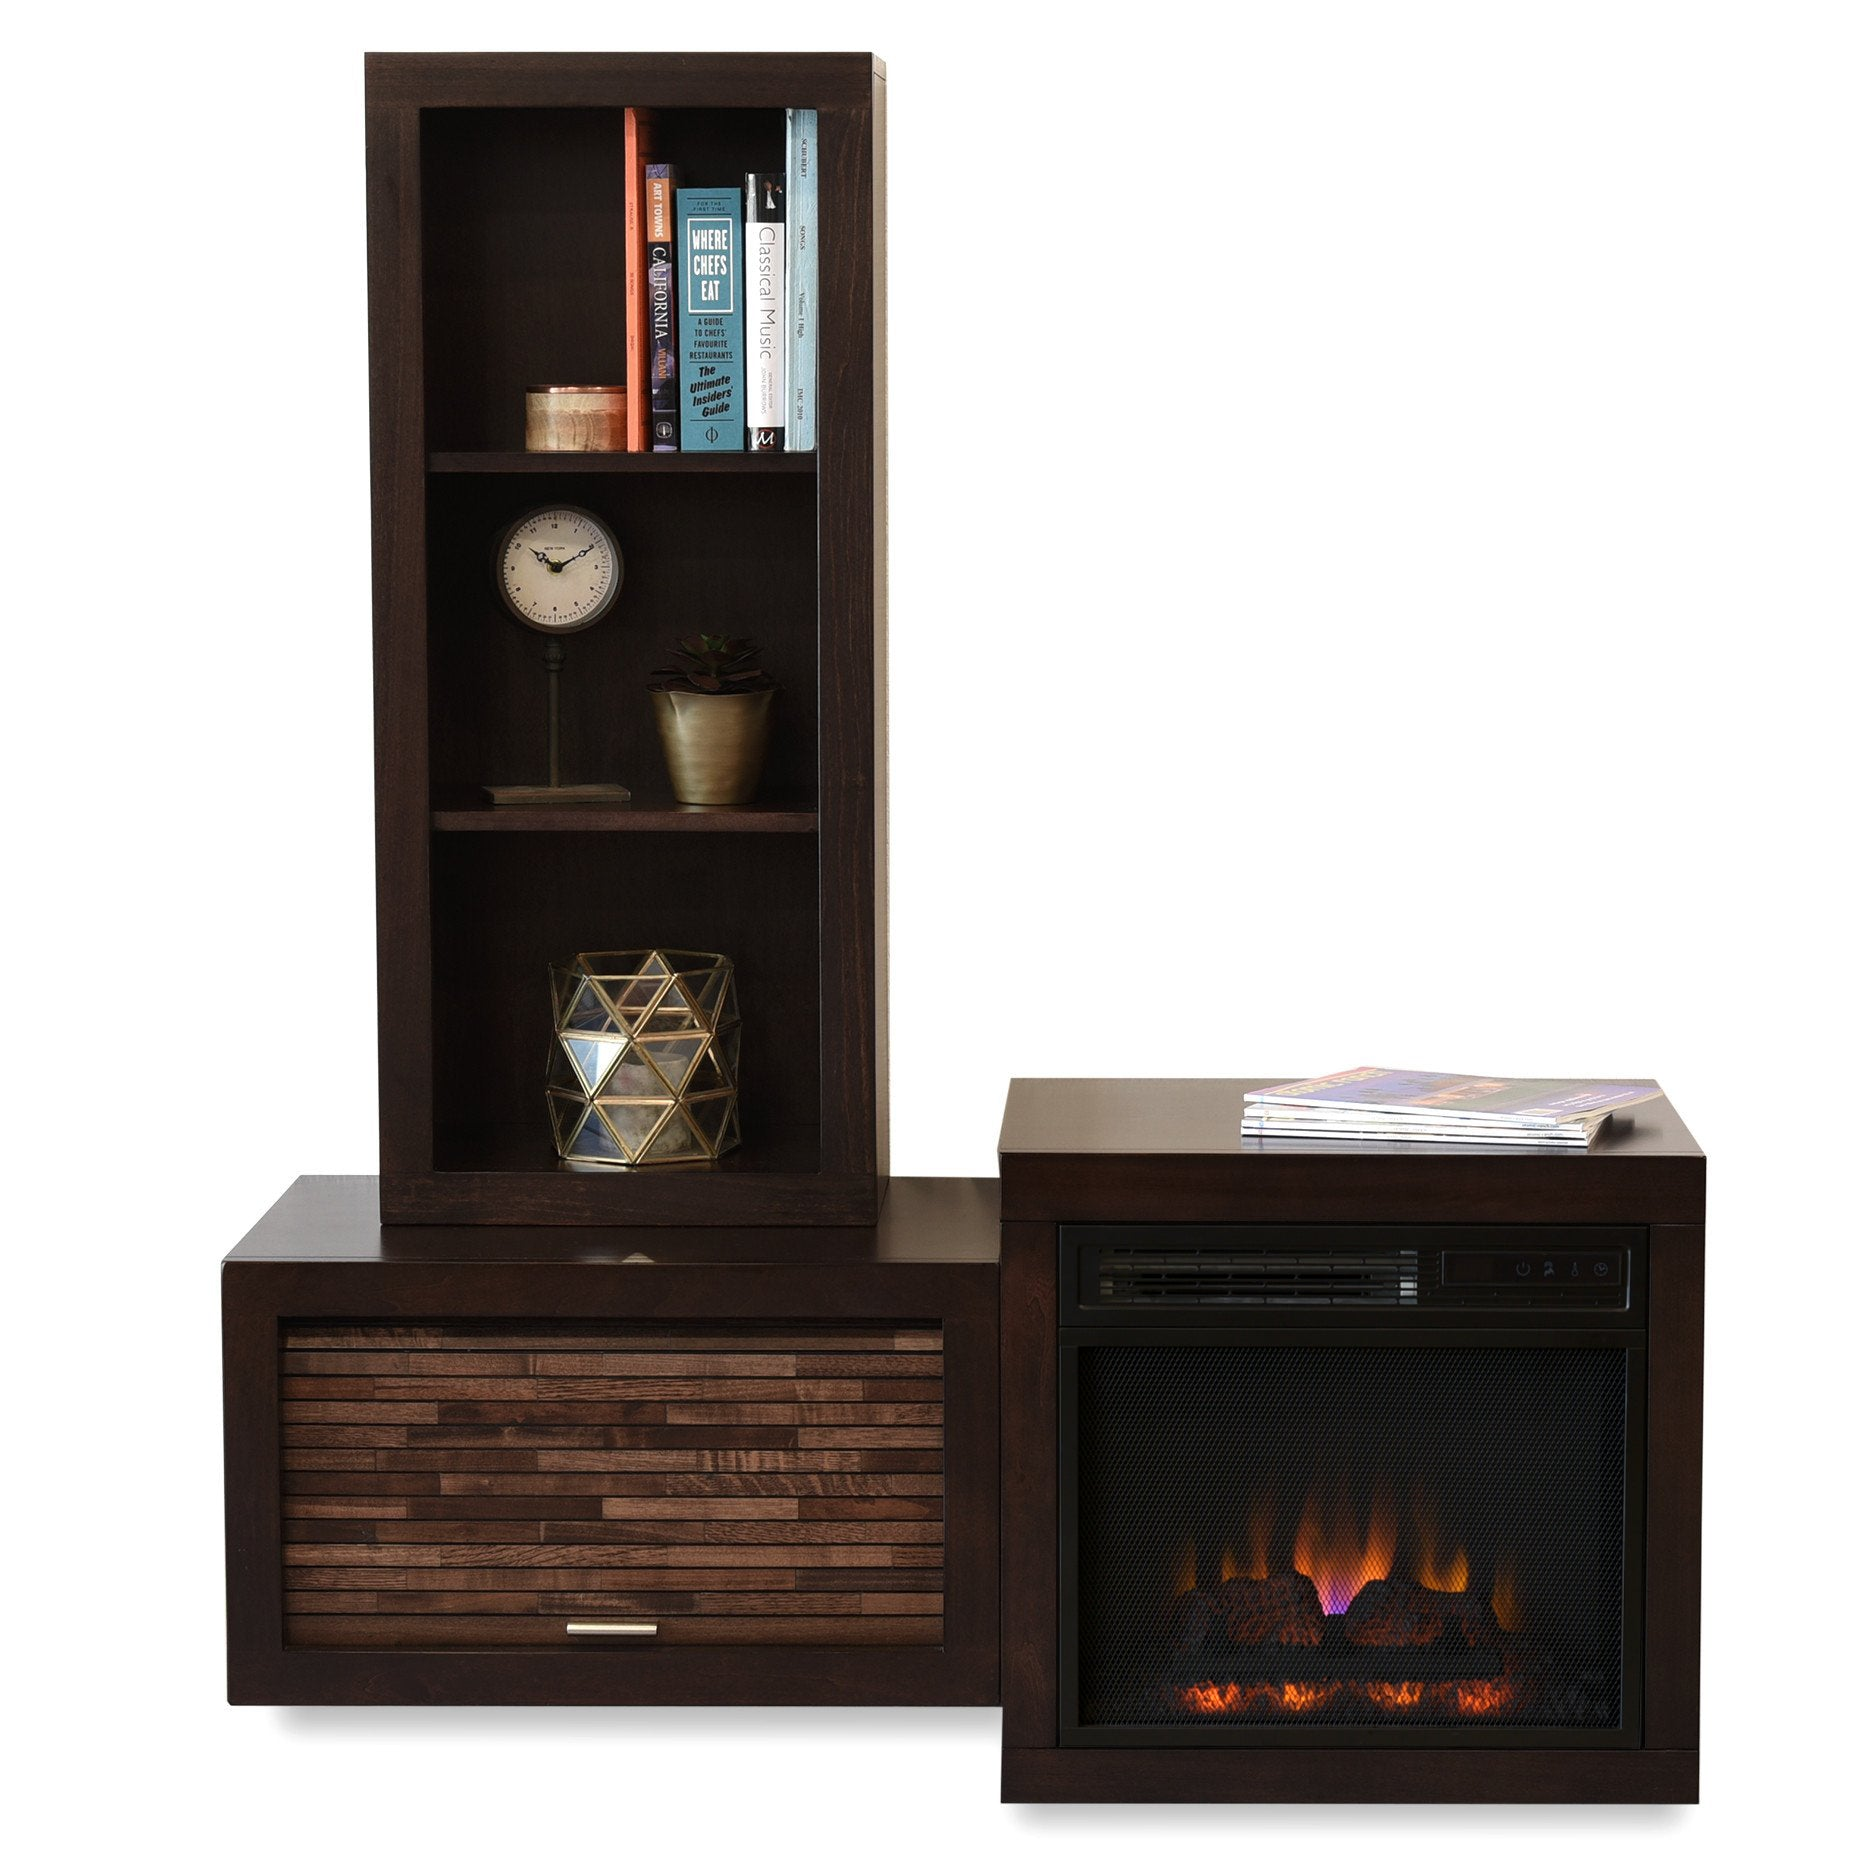 Modern Floating Wall Mount Electric Fireplace Media Console and Bookcase - ECO GEO Espresso